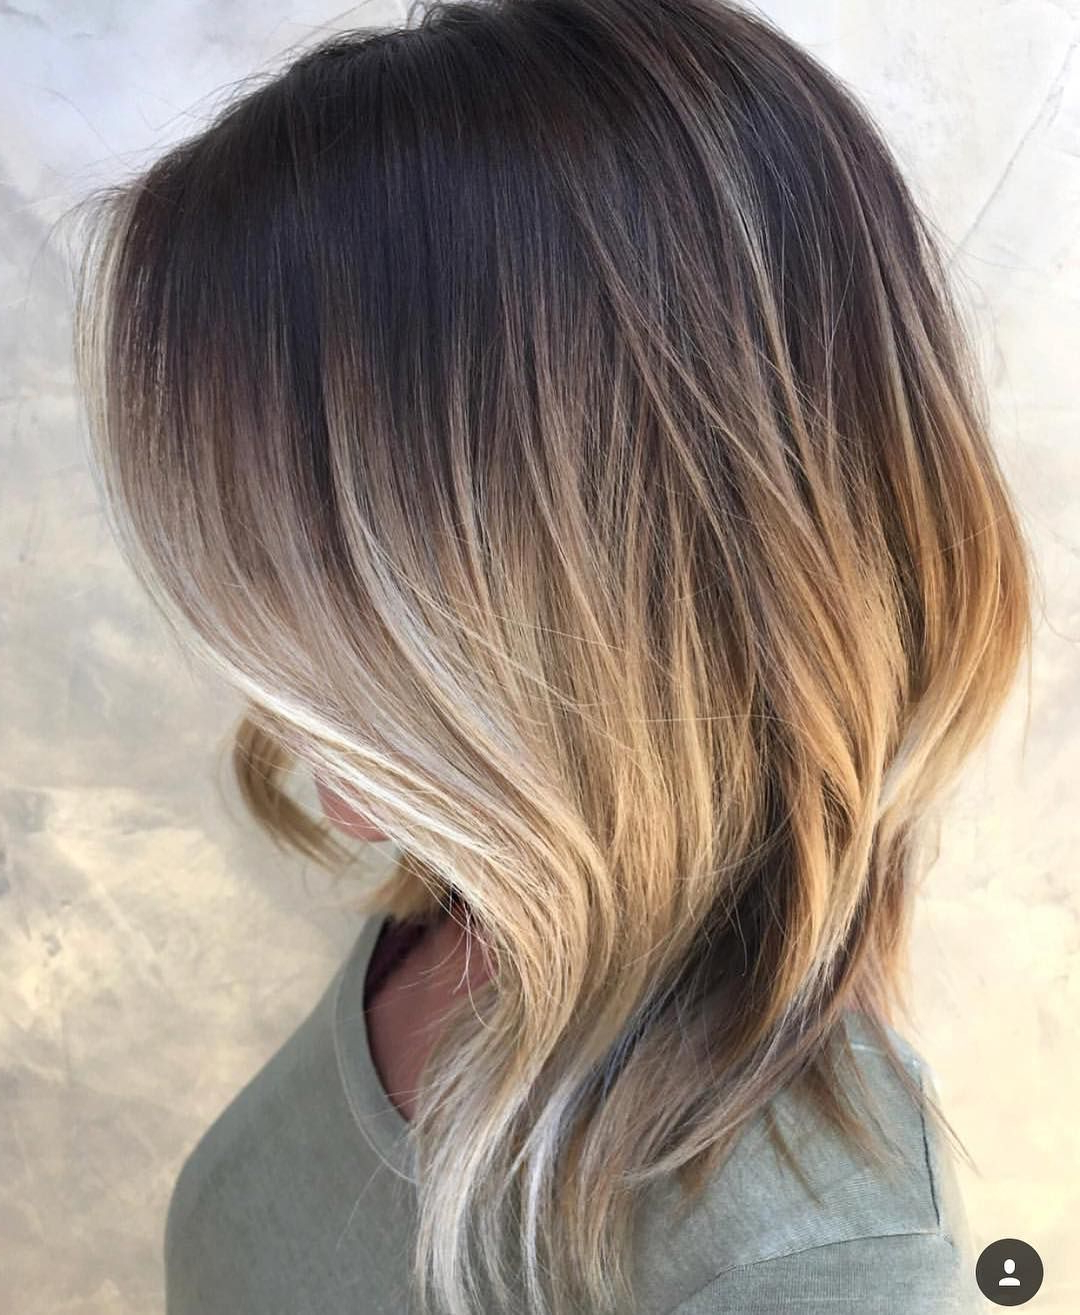 10 Everyday Medium Hairstyles For Thick Hair 2019: Easy Trendy Pertaining To Most Recent Medium Hairstyles For Very Thick Hair (View 10 of 20)